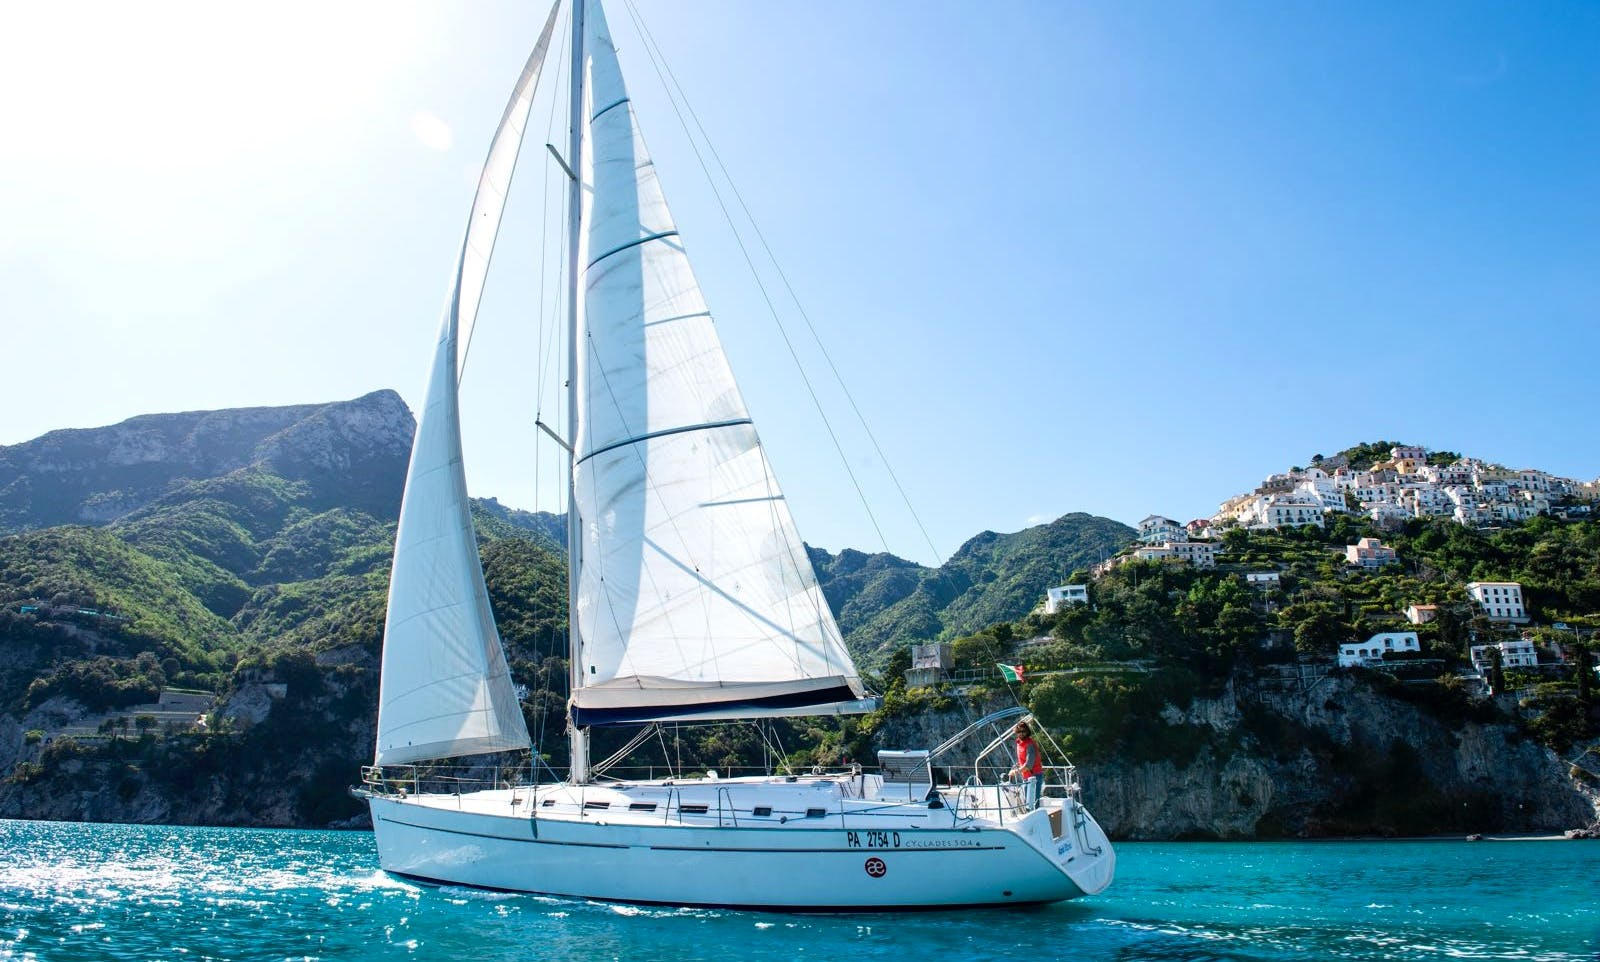 Beneteau Cyclades 50.4 Charter for Up to 13 People in Salerno, Italy